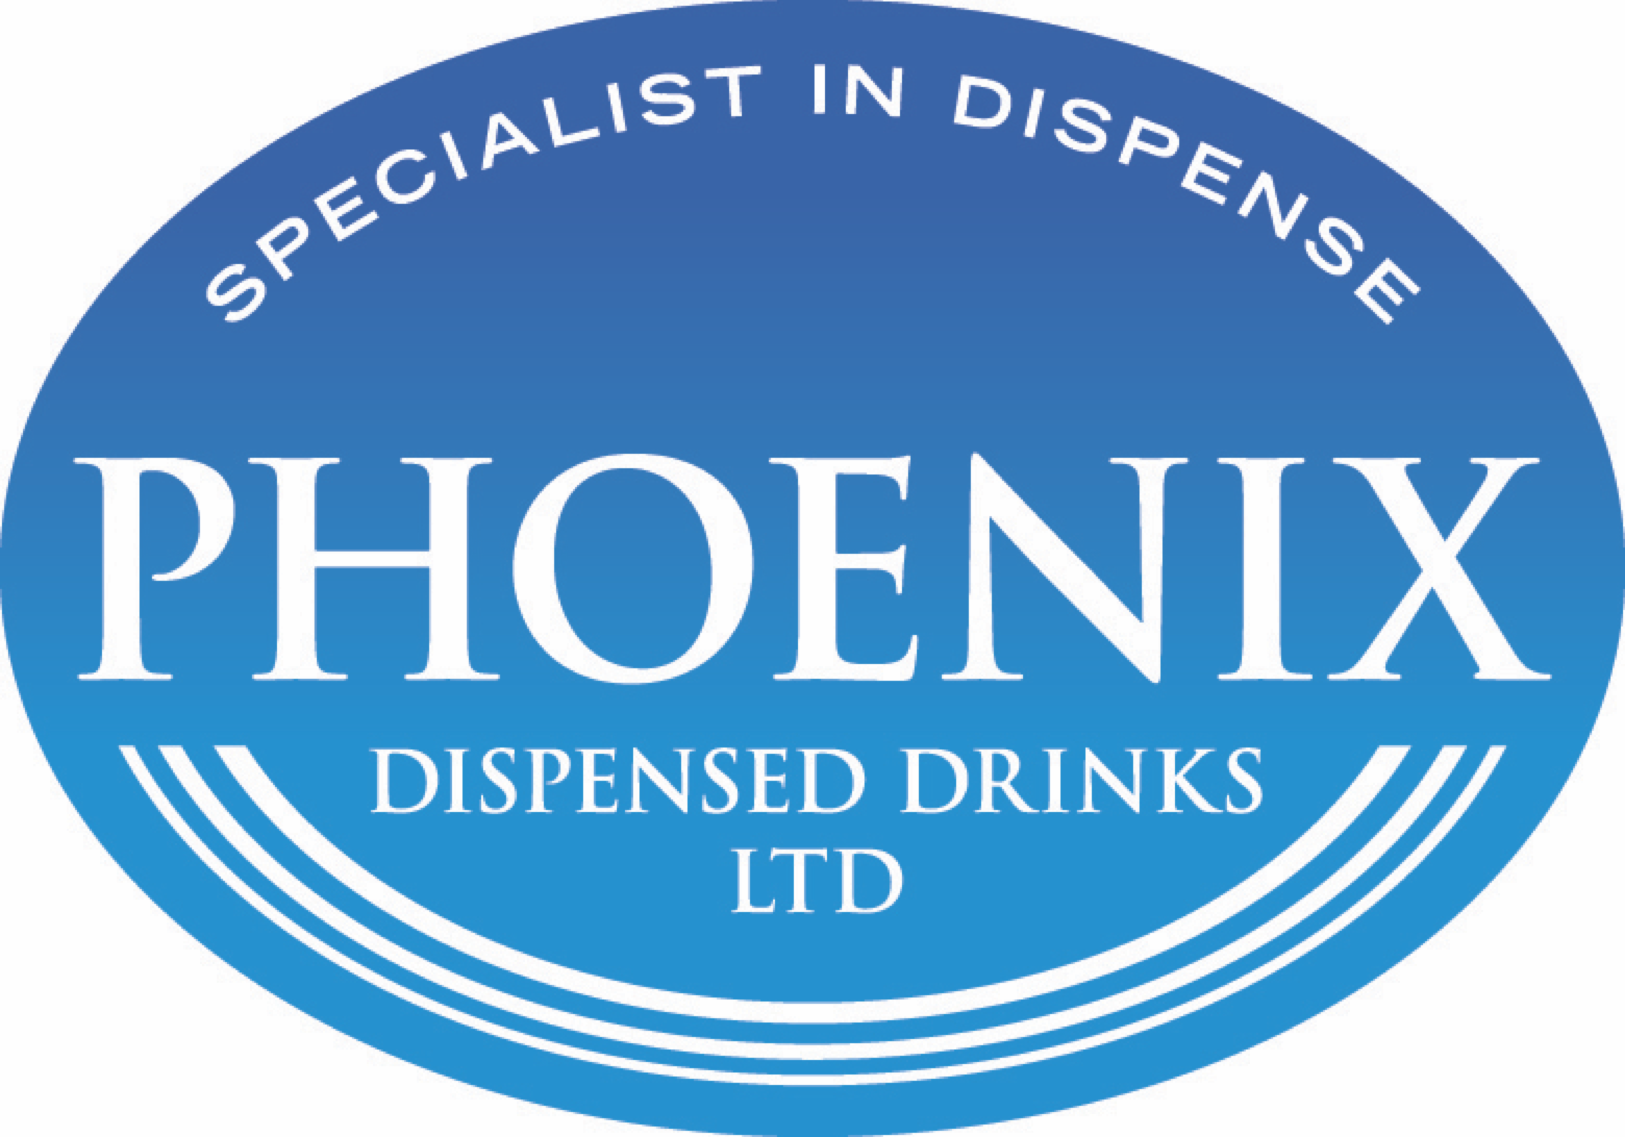 Phoenix Dispensed Drinks Ltd